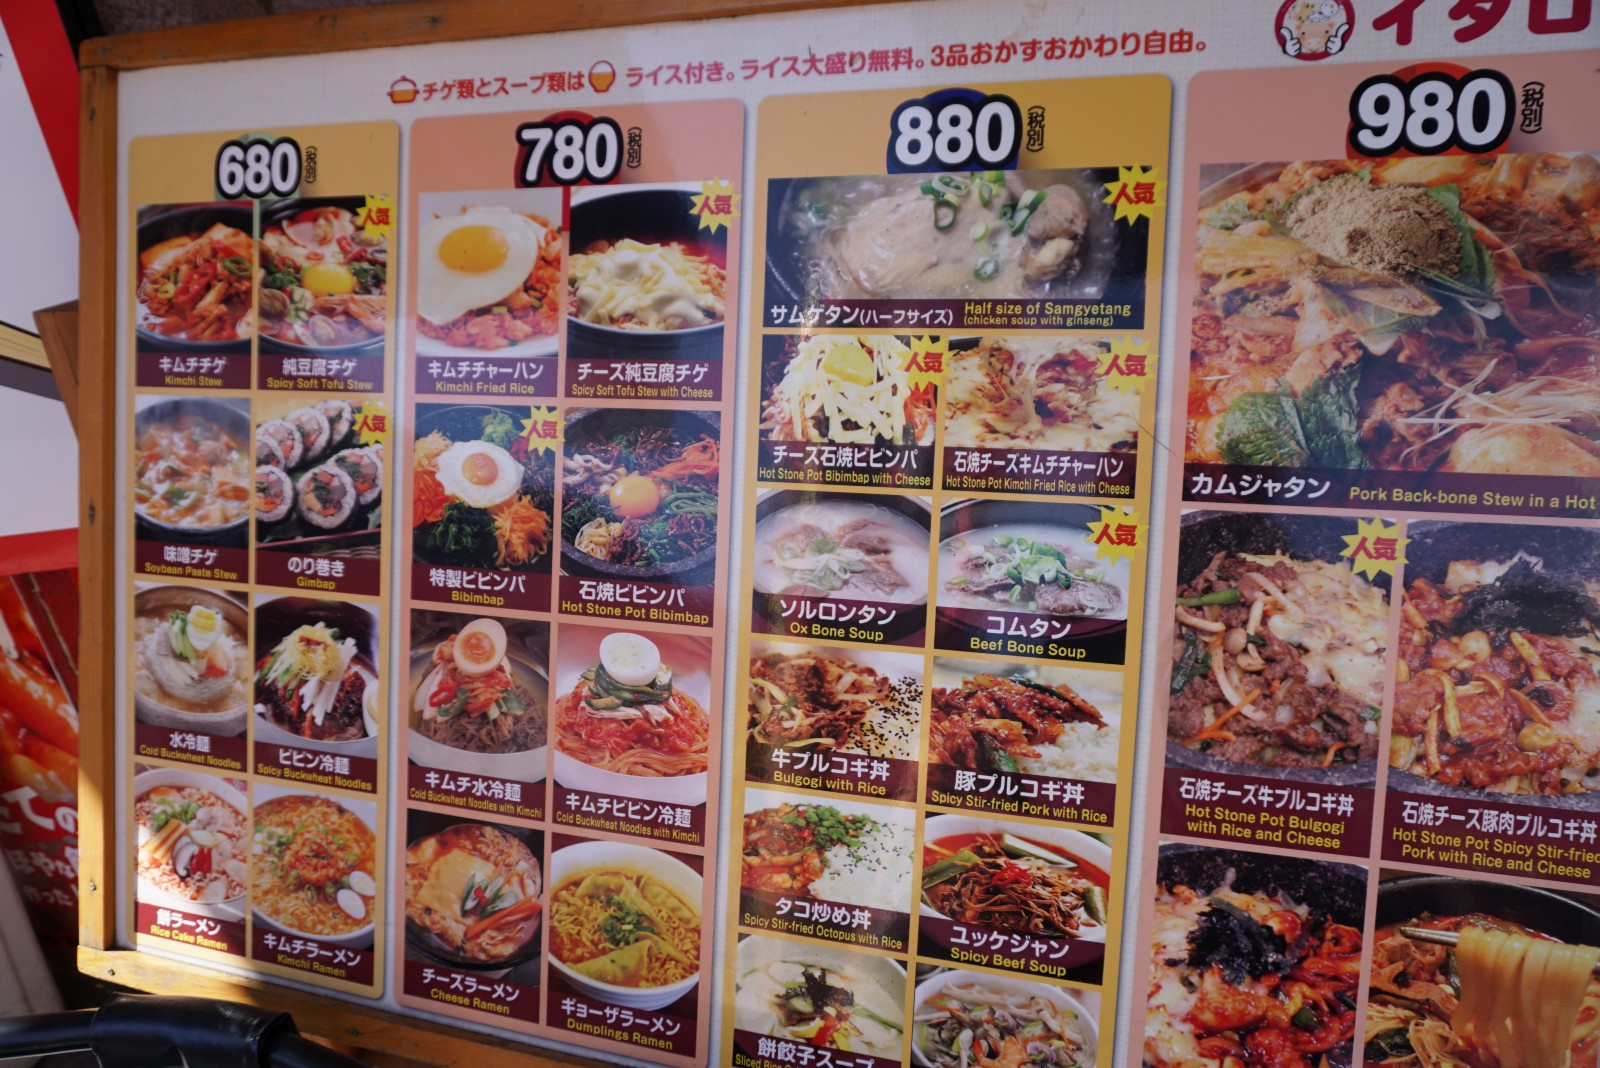 5b9a3d54a0 If you tried enough Japanese food and want to try something different, how  about dining at one of Koran restaurants in Shin Okubo??